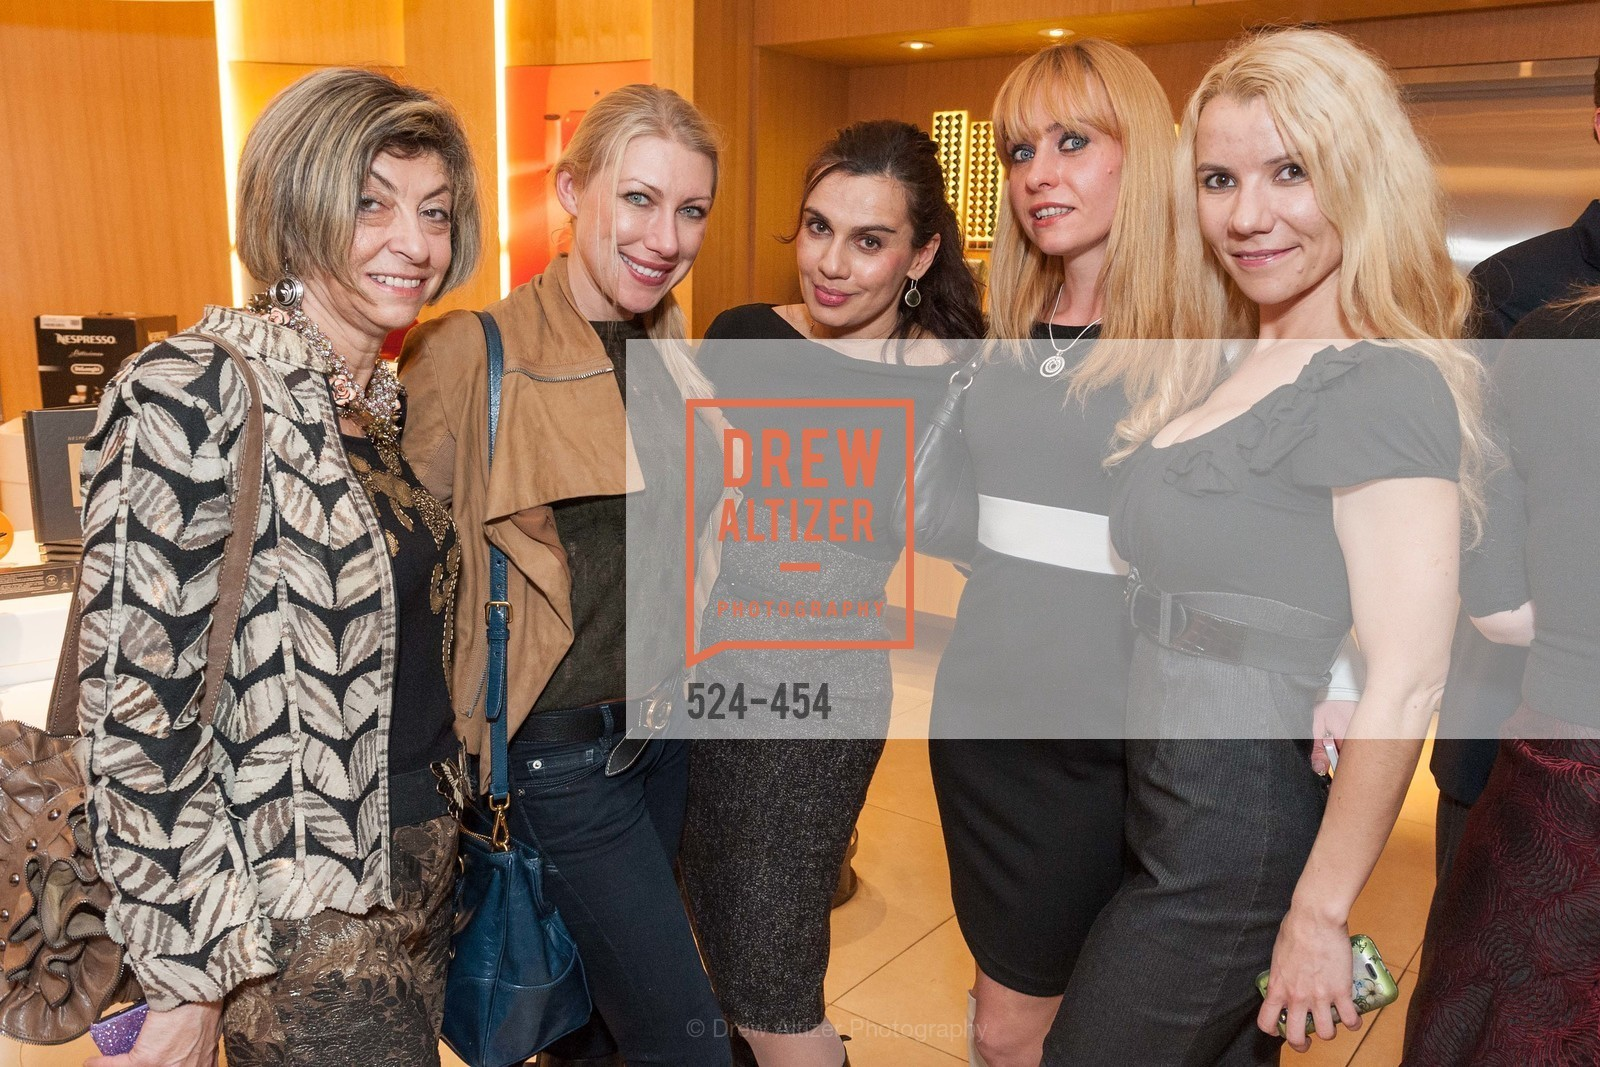 Ludmila Eggleton, Lana Dobbs, Maya Gervis, Irina Kondratenko, 2014 SAN FRANCISCO BALLET ENCORE! Kick-Off Party, US. Nespresso Boutique Bar, 90 Grant Avenue, January 7th, 2014,Drew Altizer, Drew Altizer Photography, full-service event agency, private events, San Francisco photographer, photographer California